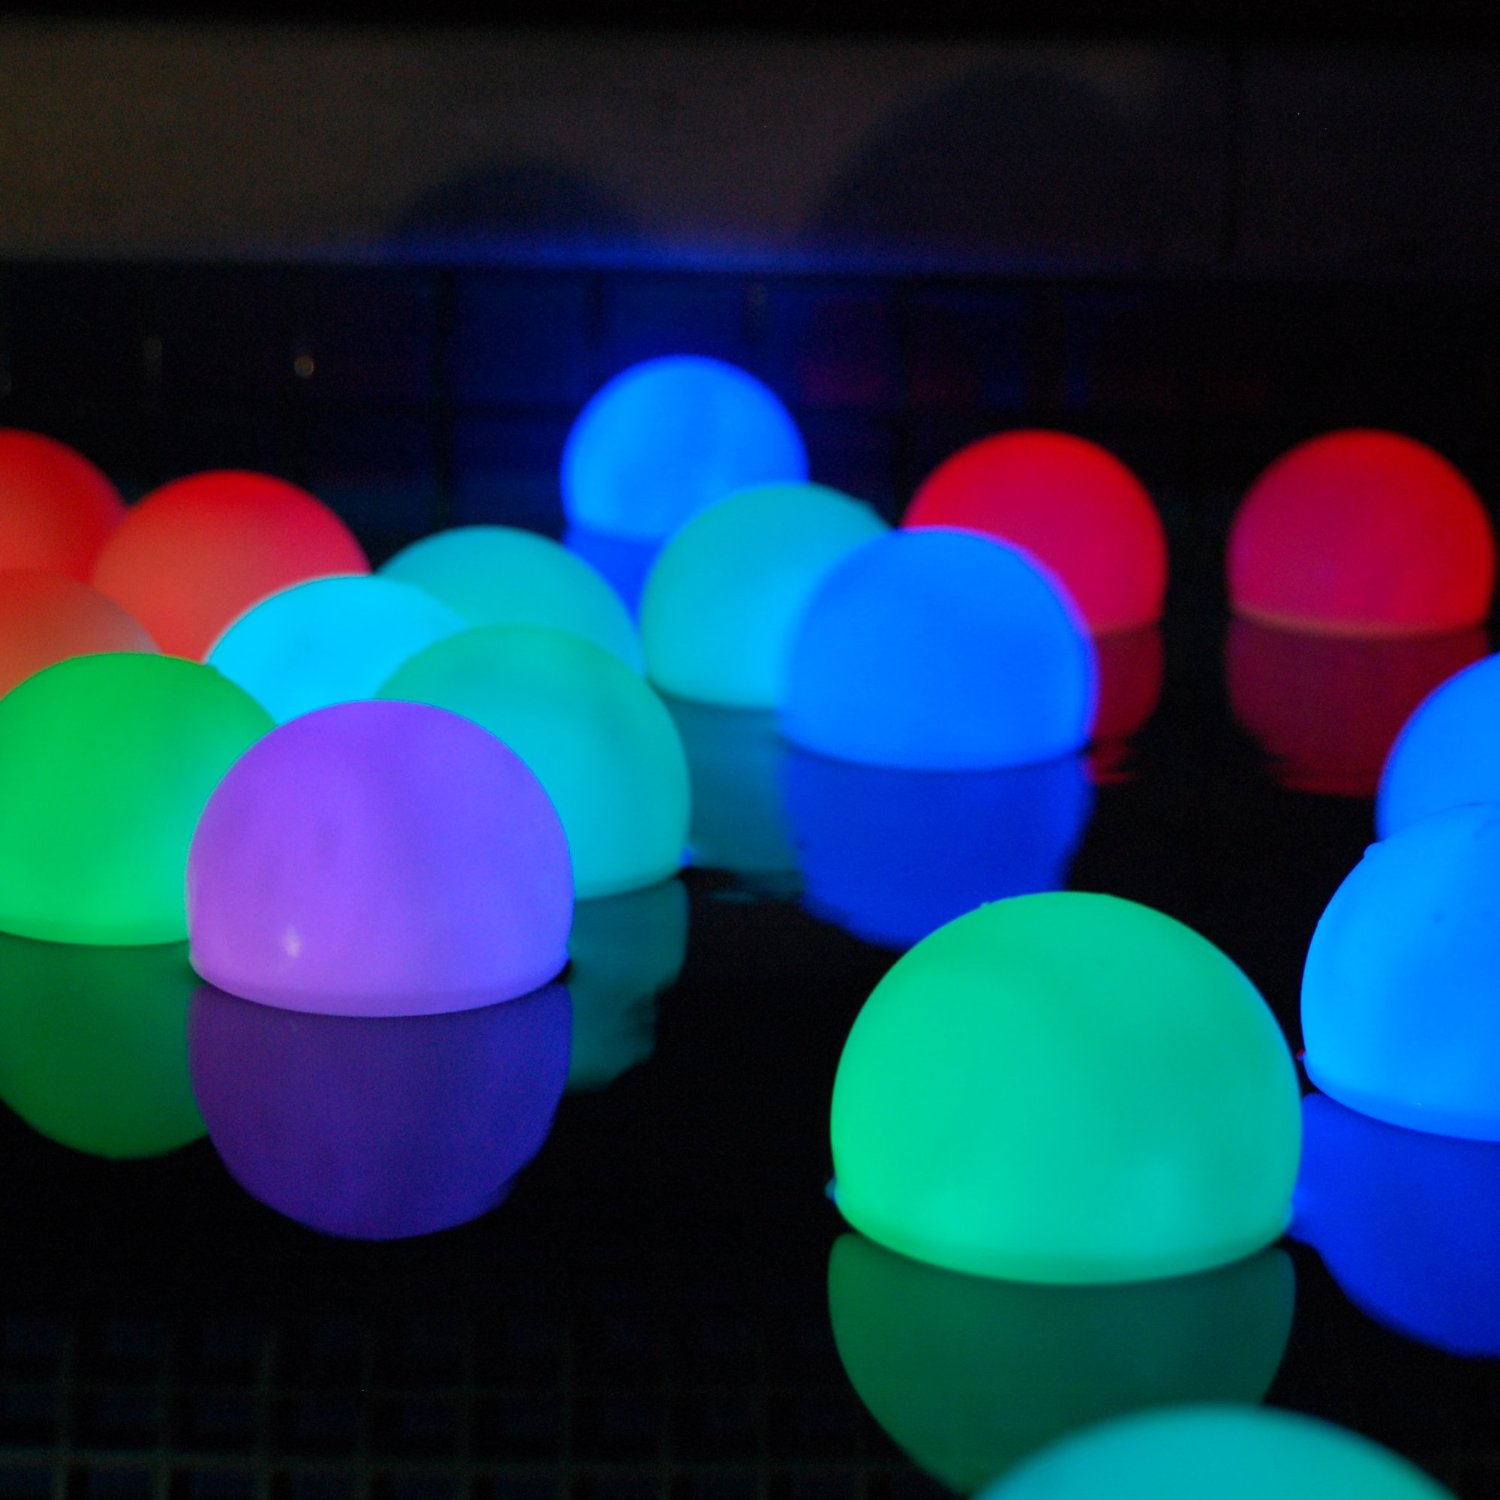 Mood Light Garden Deco Balls - Inground Pool Lights